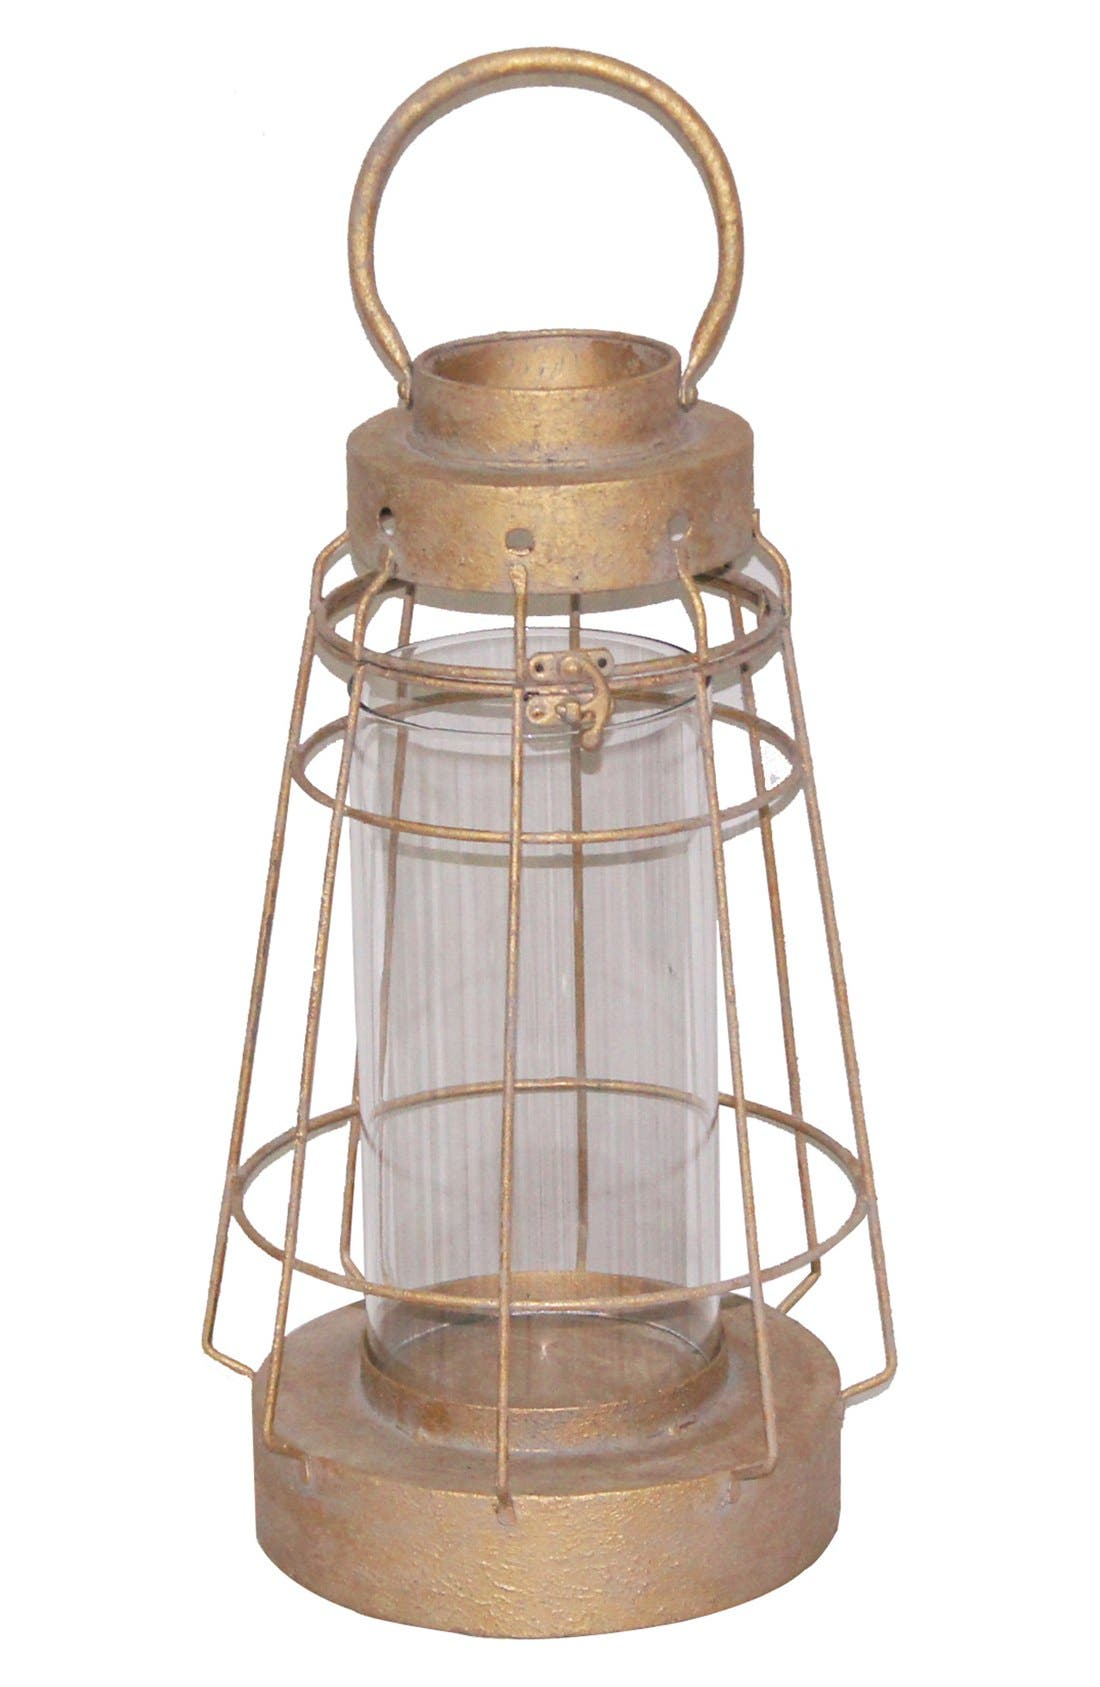 Alternate Image 1 Selected - Creative Co-Op Wood & Metal Lantern Candle Holder